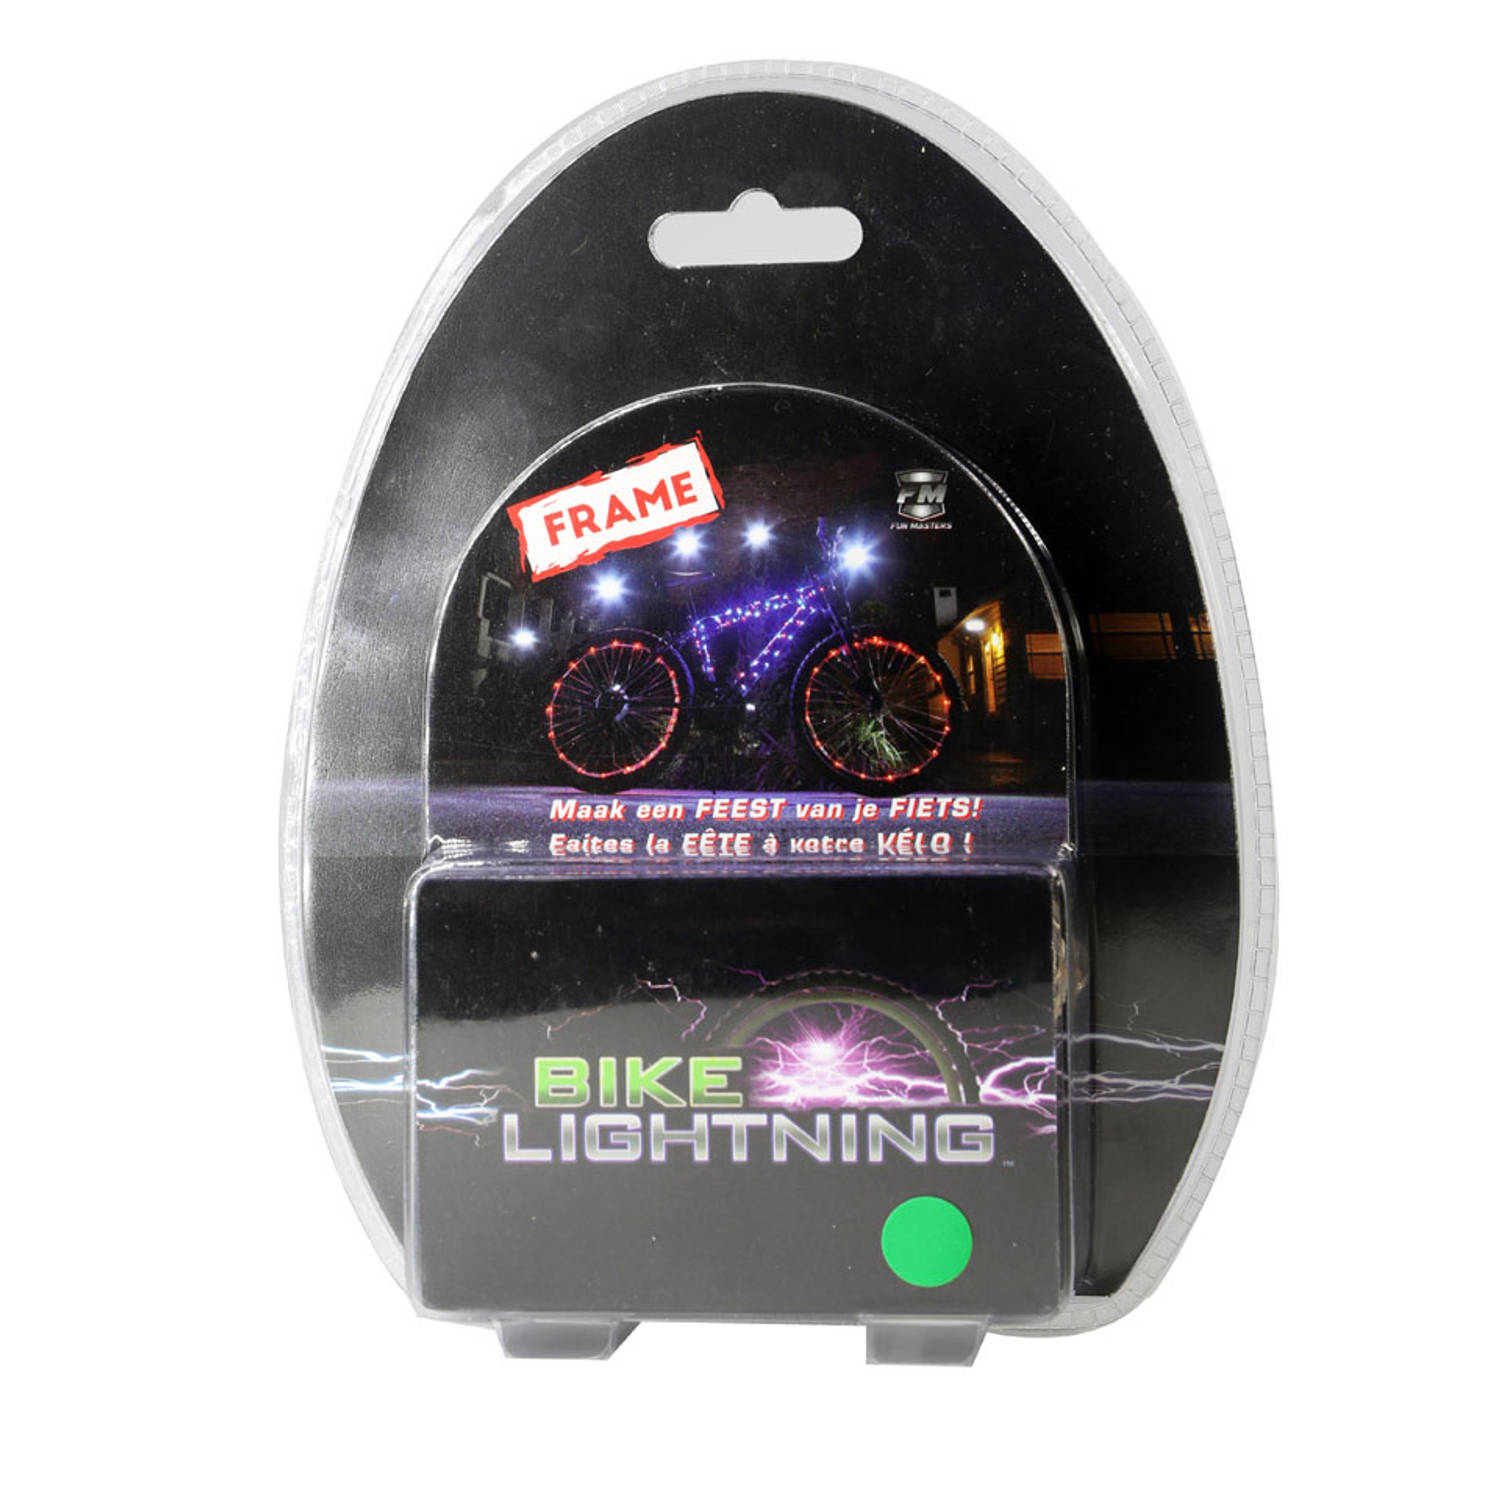 bike lightning voor frame